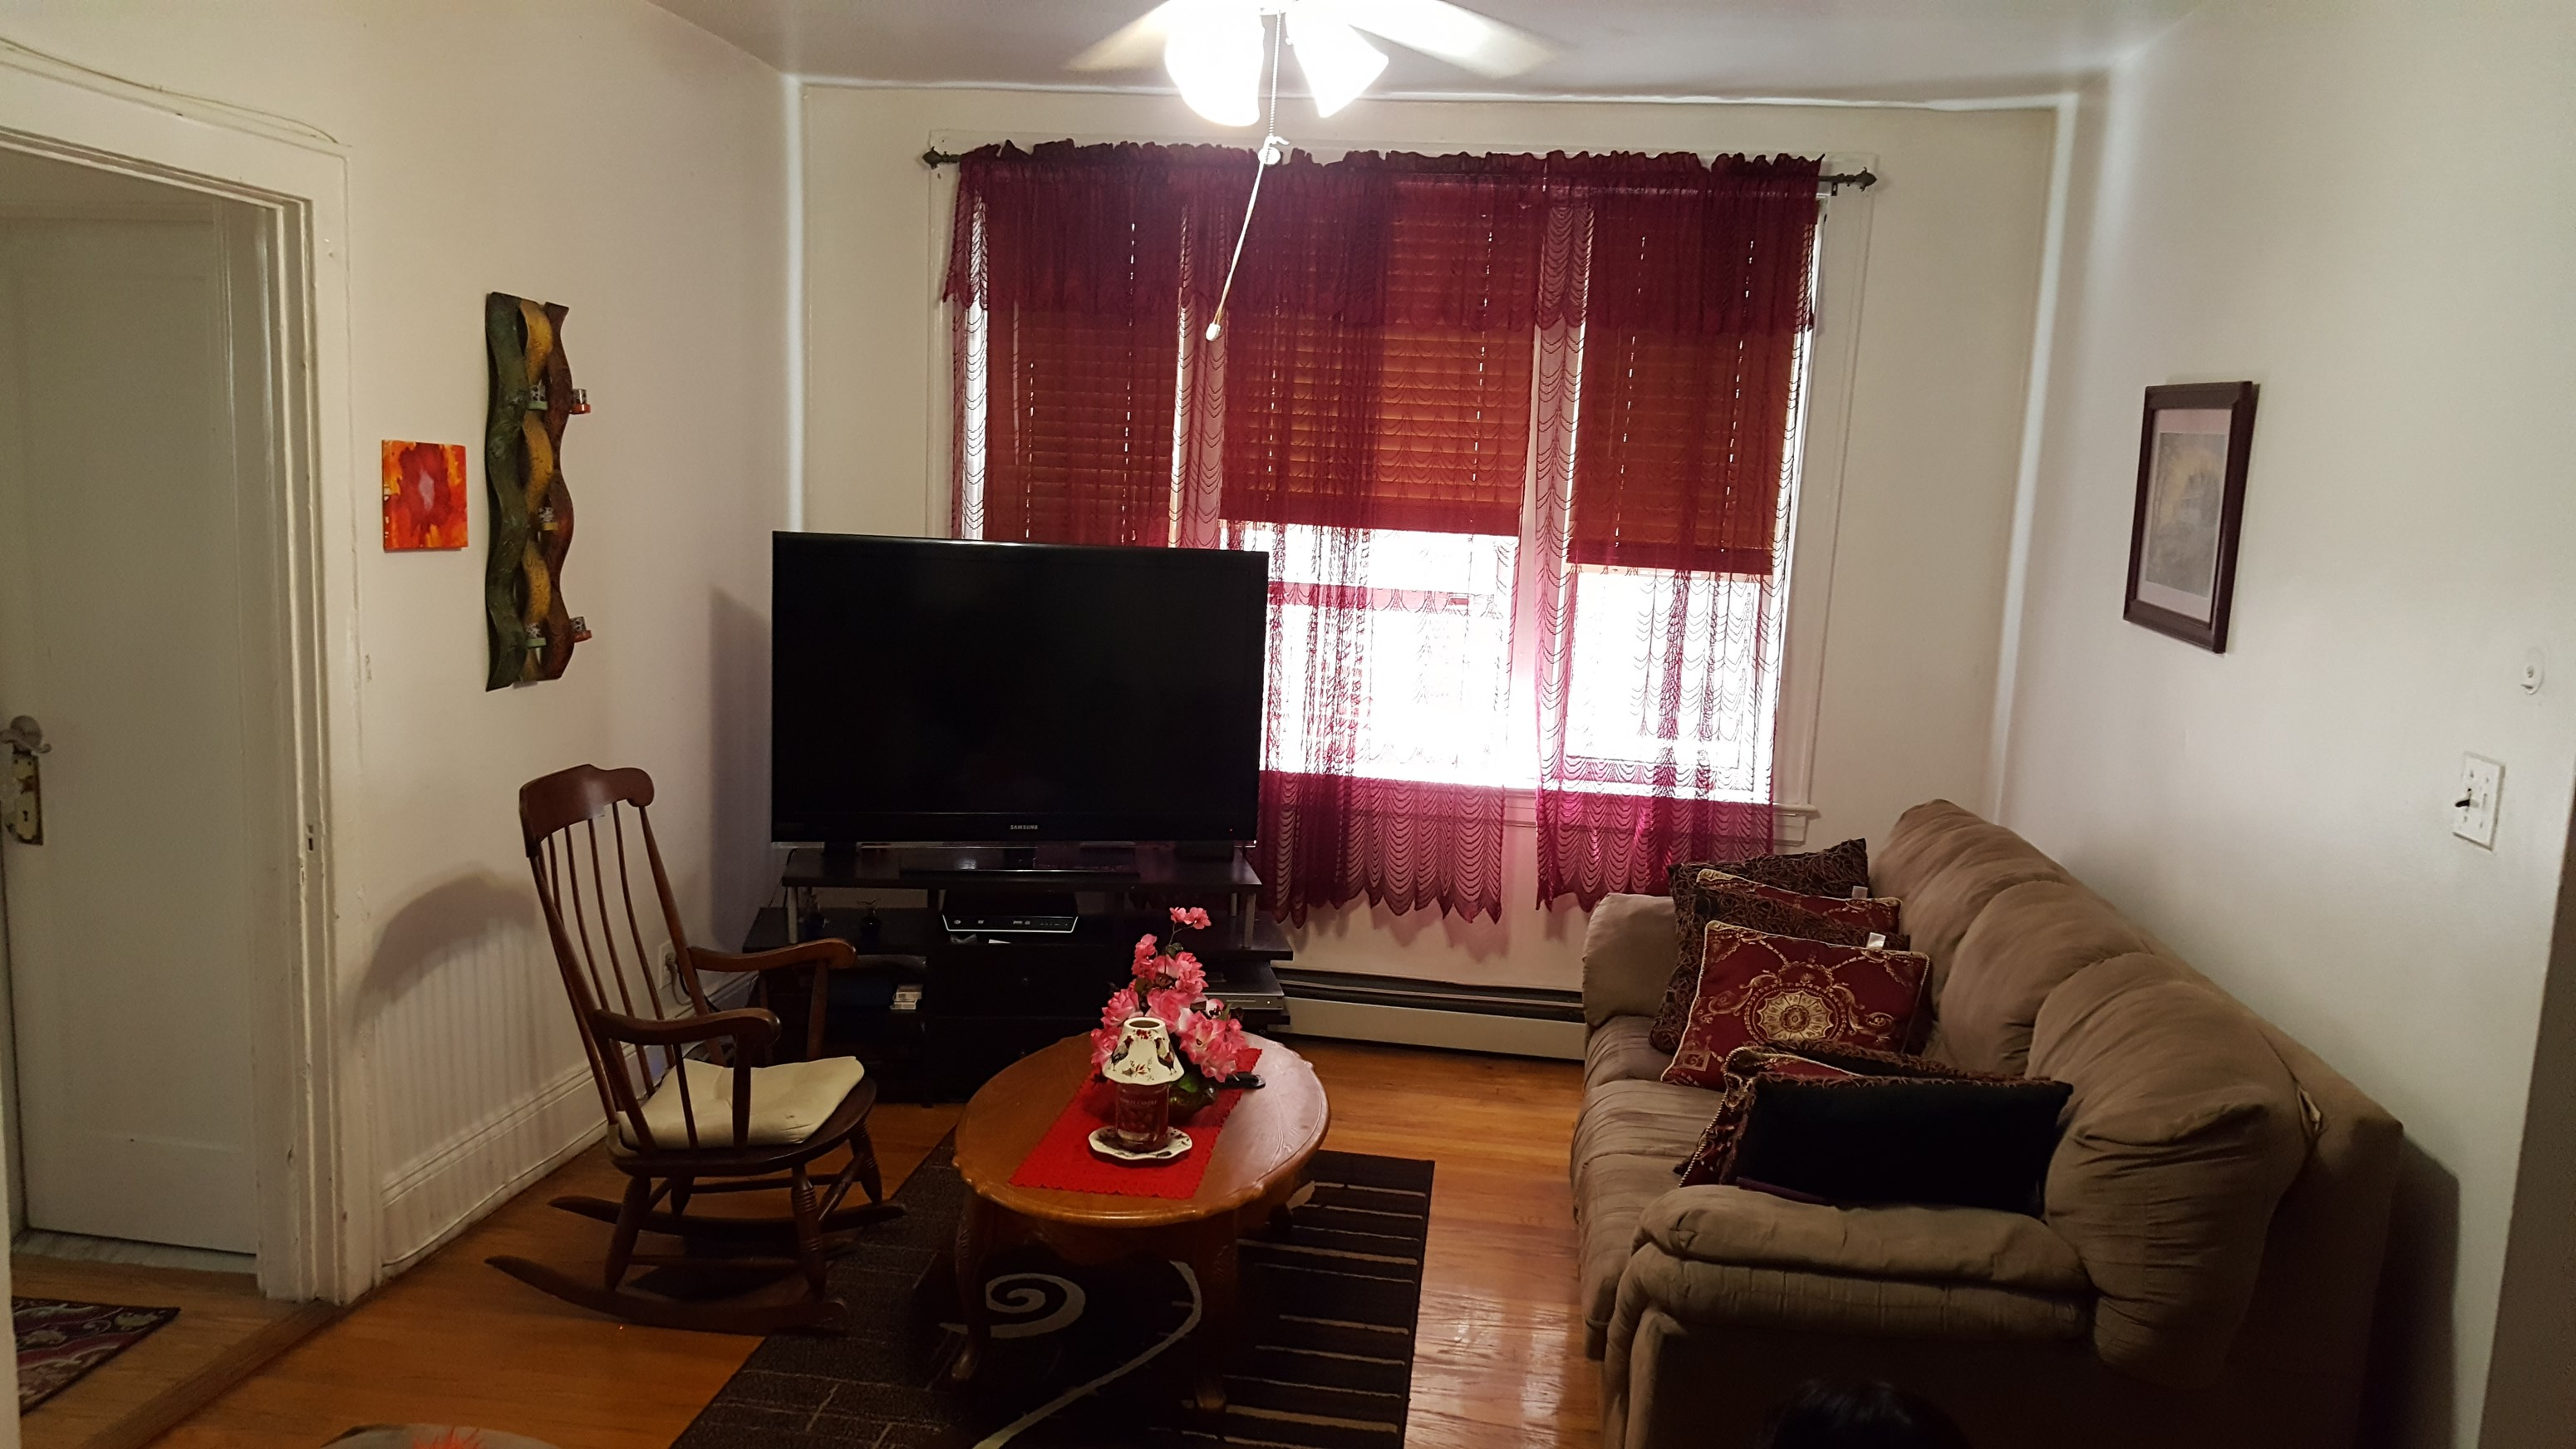 1 Bedroom Apartment 1 BHK Apartments And Flats In Jersey City NJ 886406